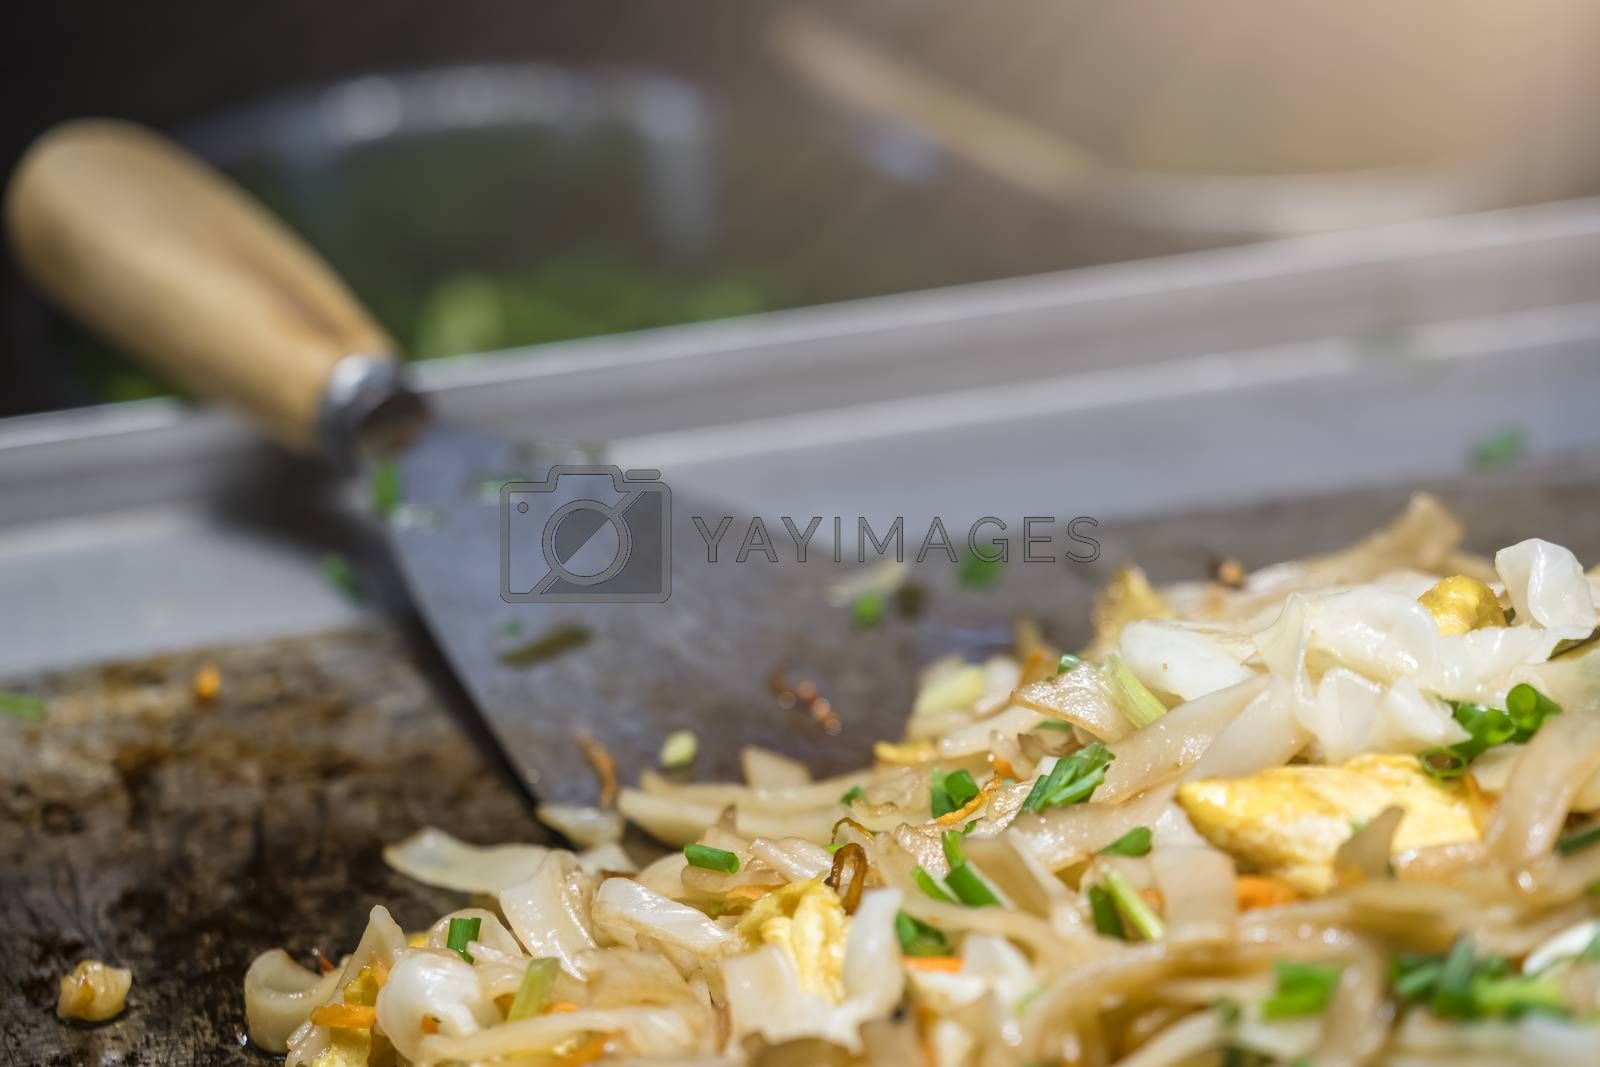 Cut onion and vegetables, egg and noodles cooked and fried on a hot plate on a street food stall in China